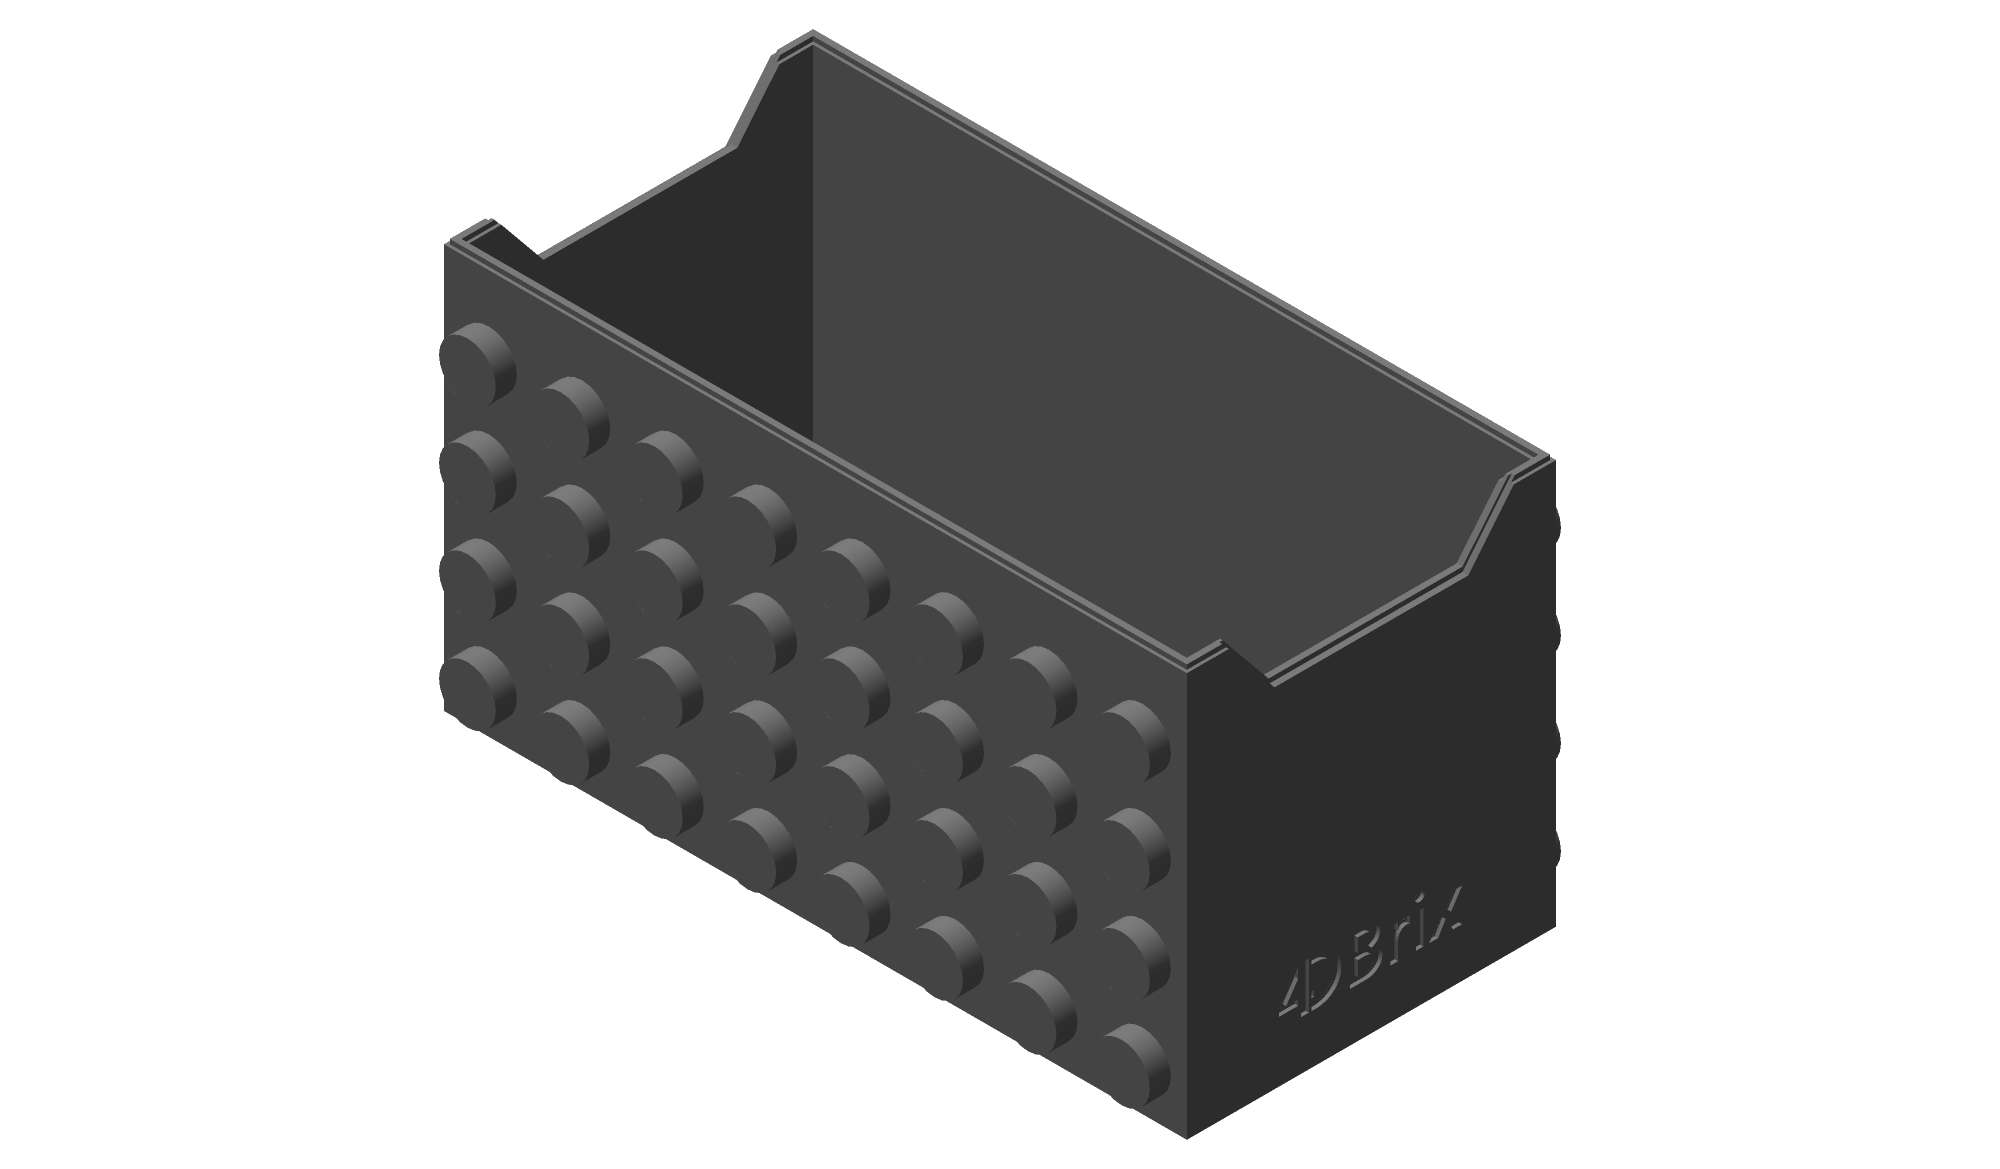 4dbrix-lego-pf-studded-battery-box-1.png